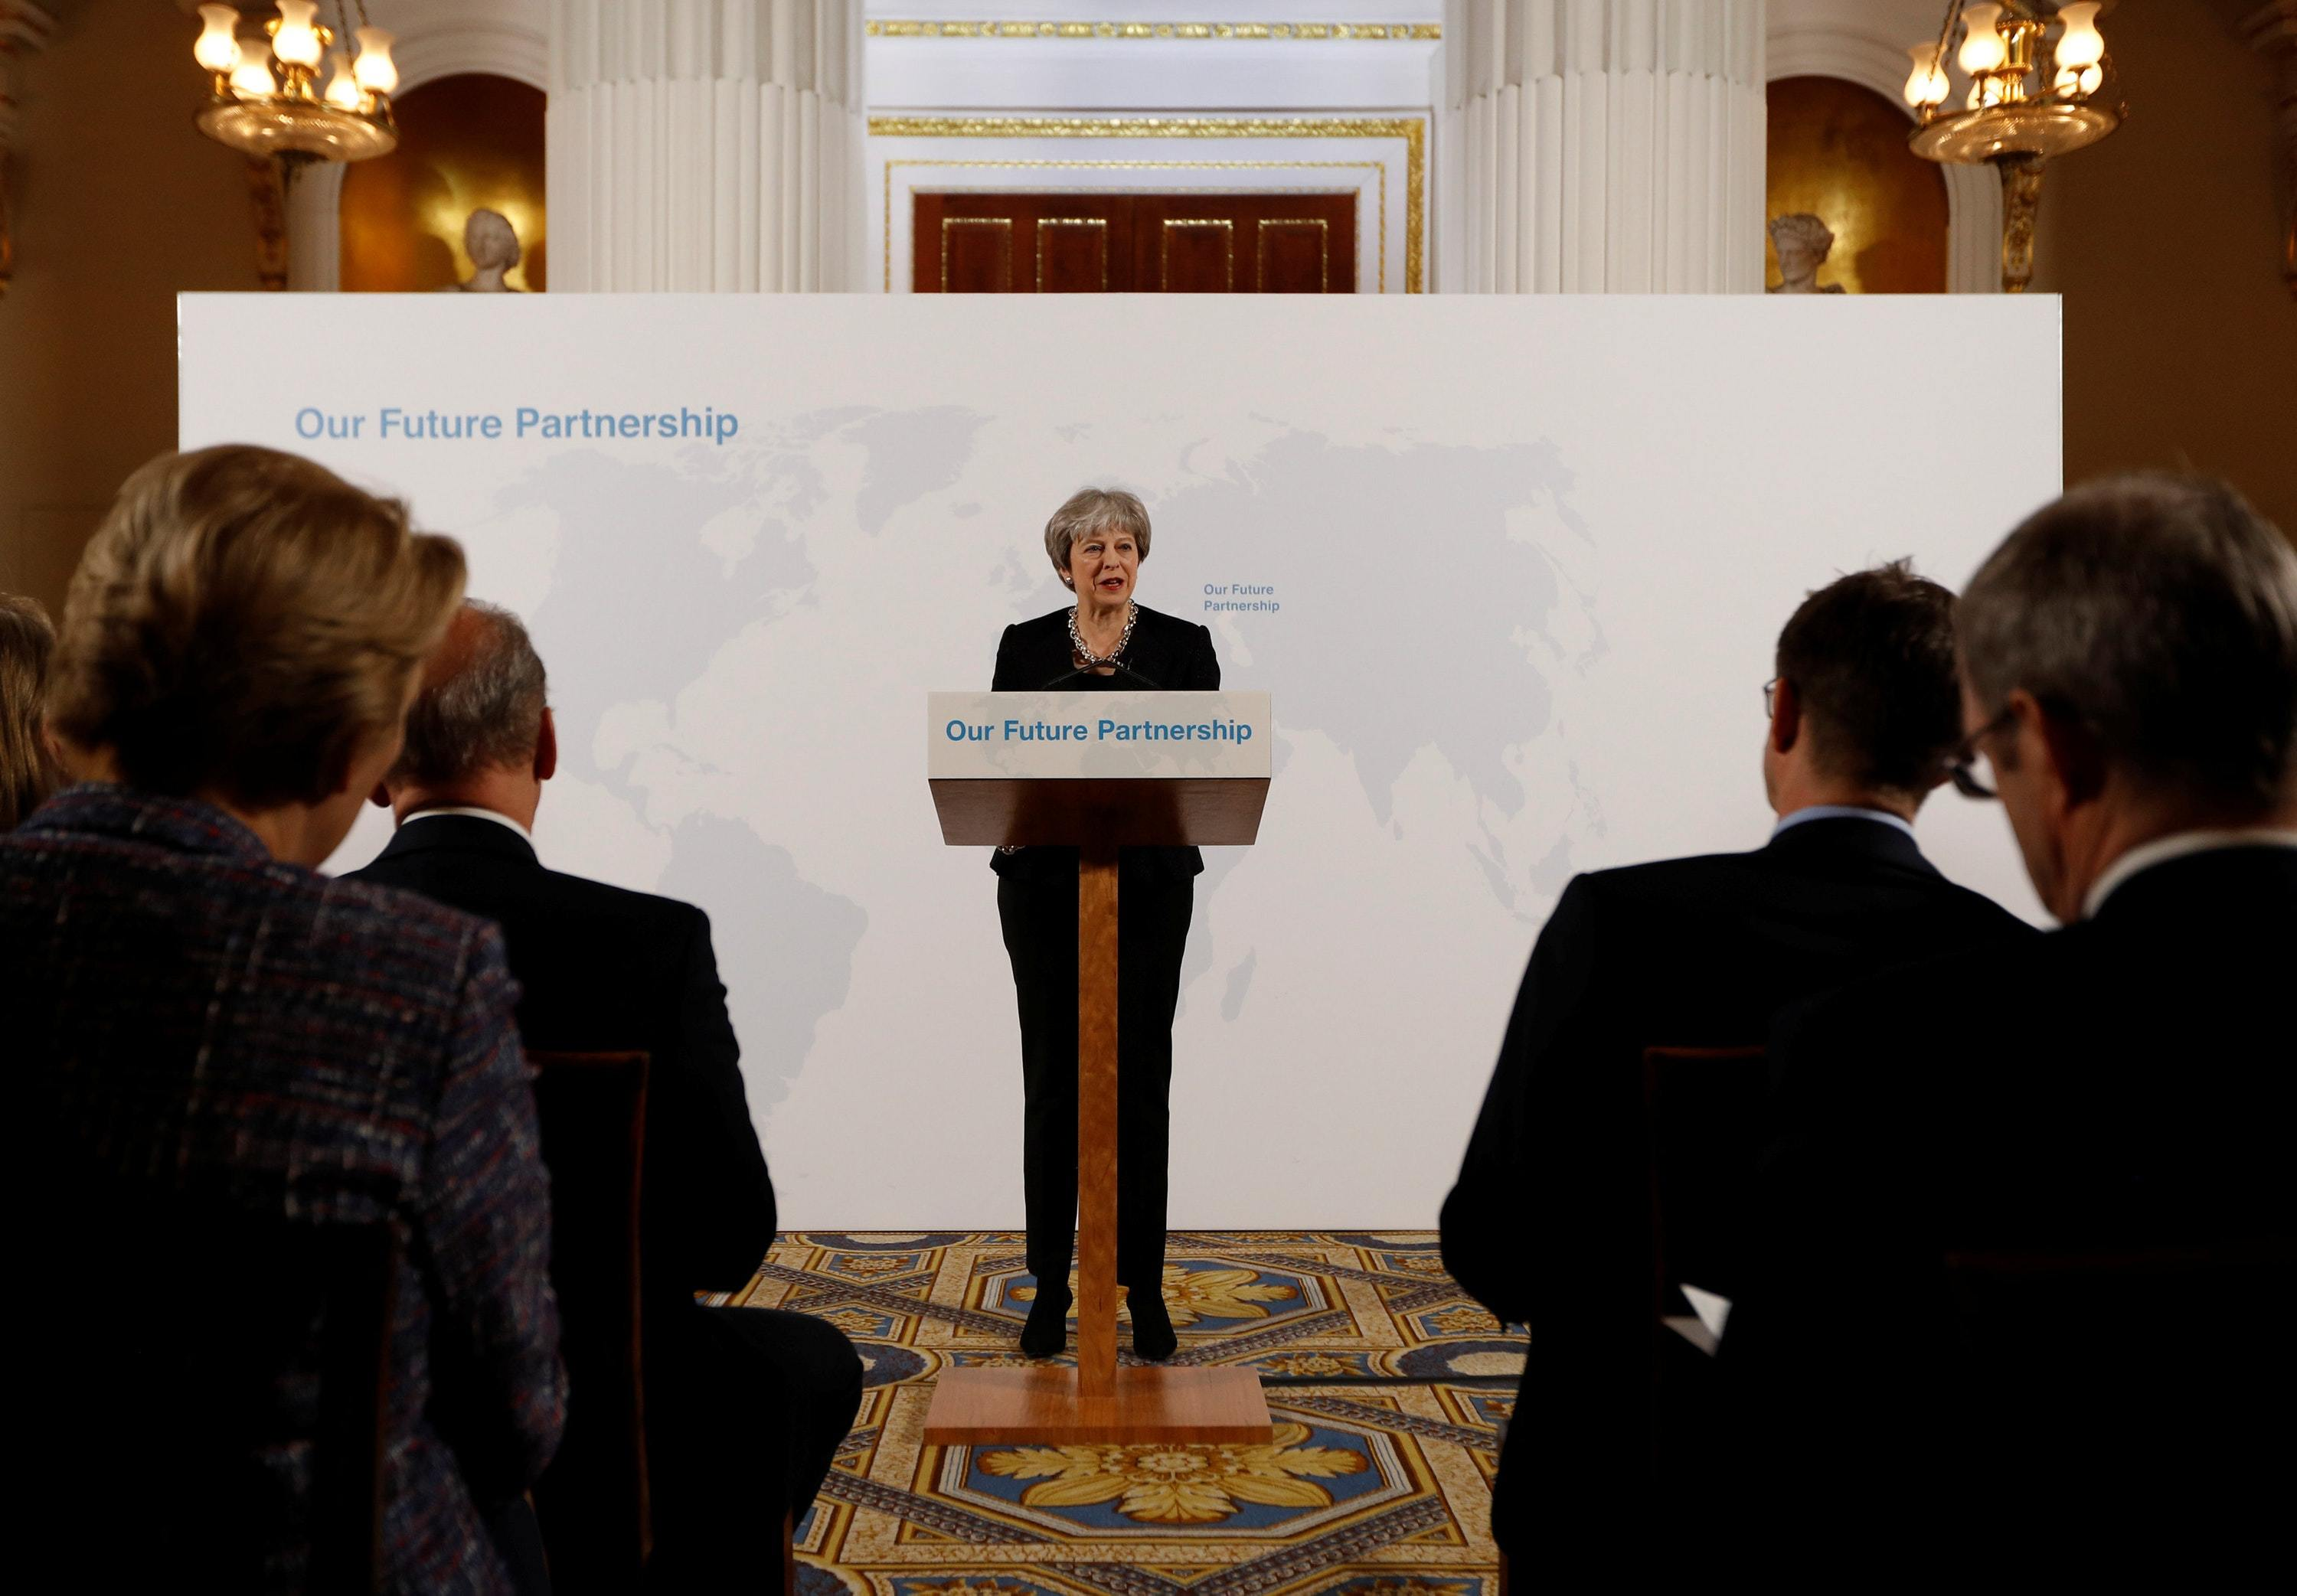 Prime Minister Theresa May delivers a speech at the Mansion House in London on the UK's economic partnership with the EU after Brexit. (PA)